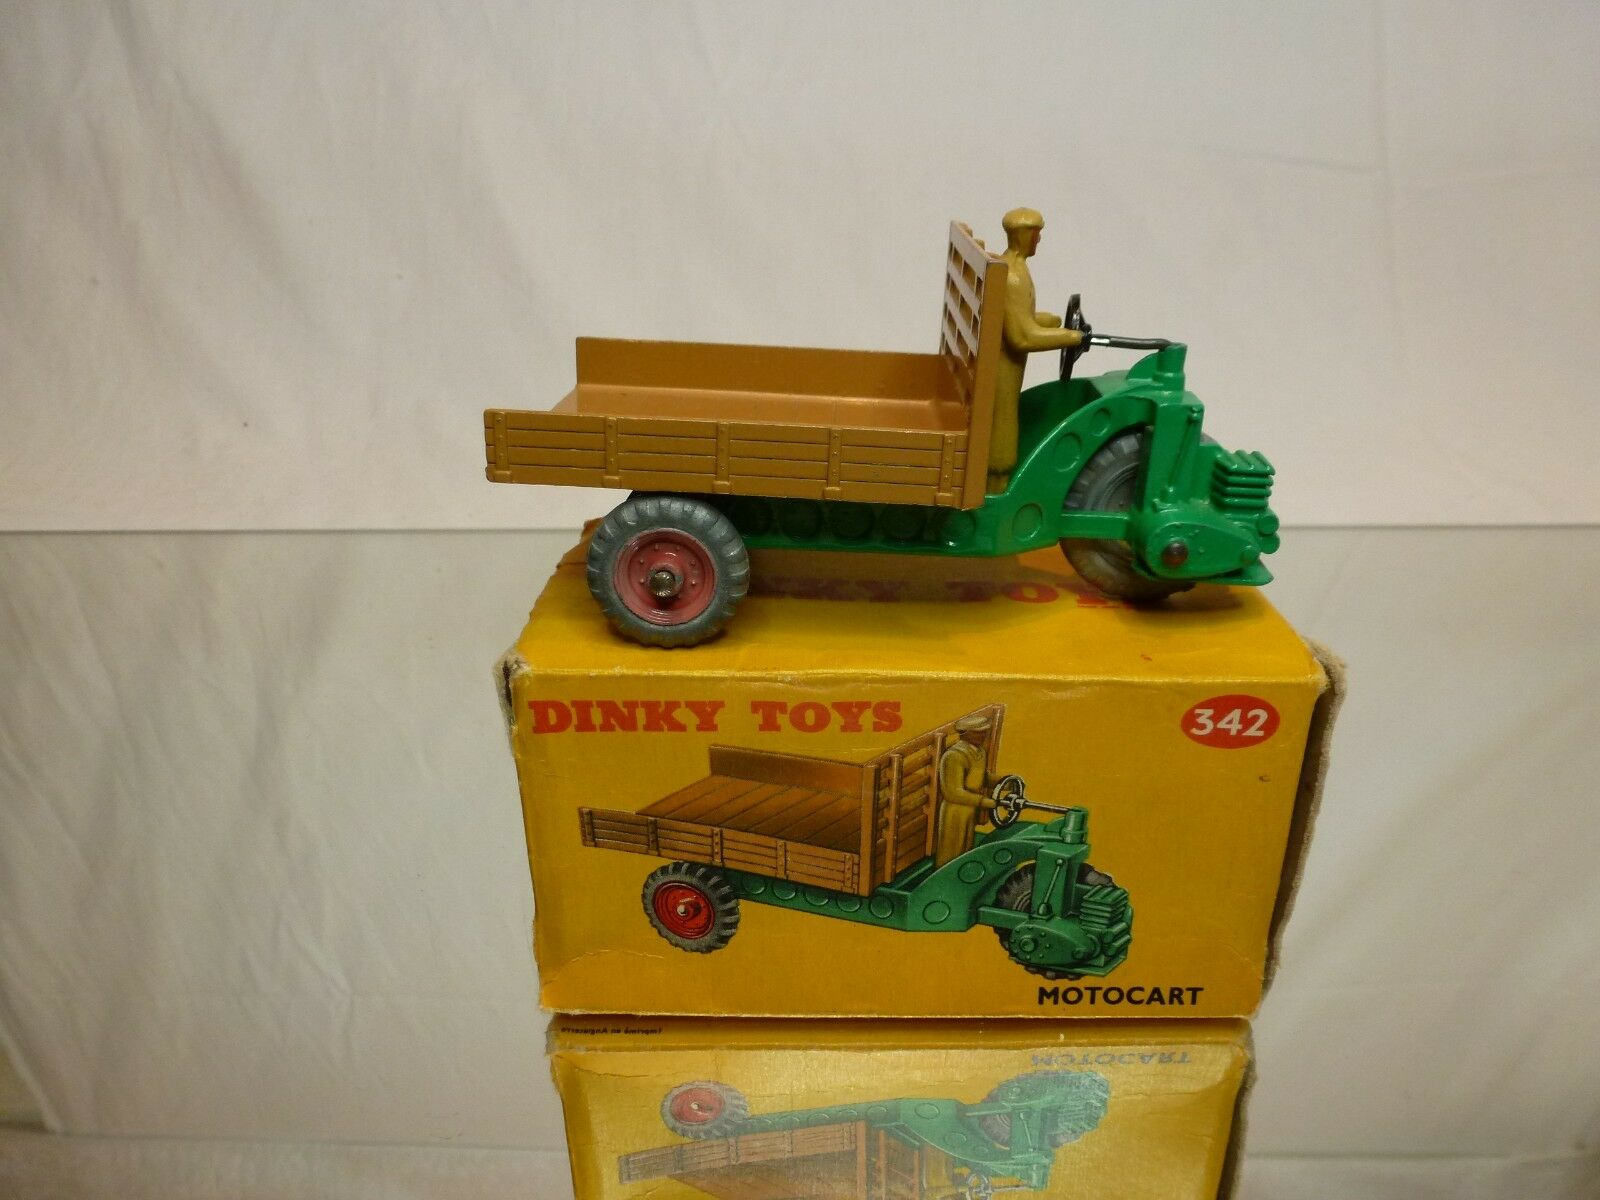 DINKY TOYS 27G 342 MOTOCART - GREEN +  BROWN 1 43 - EXCELLENT CONDITION IN BOX